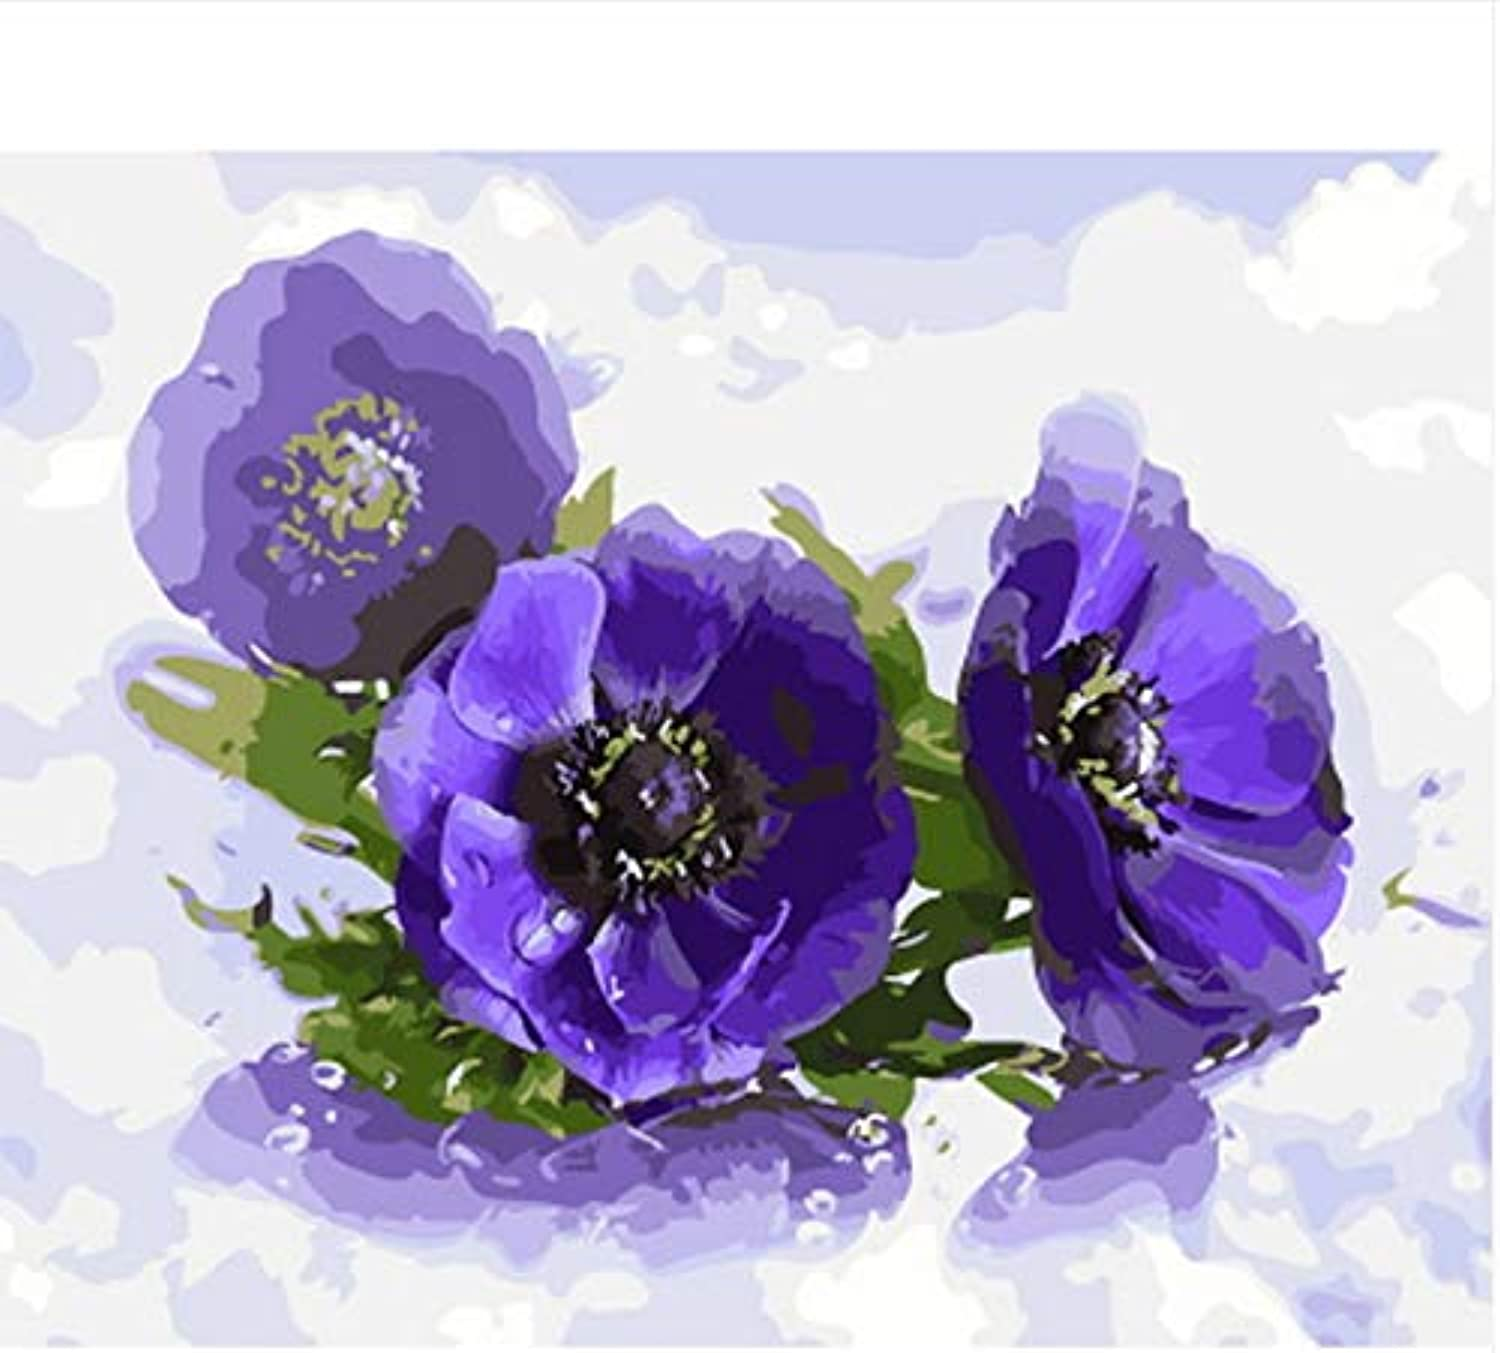 CAYYOU DIY picture oil painting by numbers wall decor painting on canvas for home decor bluee poppy, Framed, 50x60cm